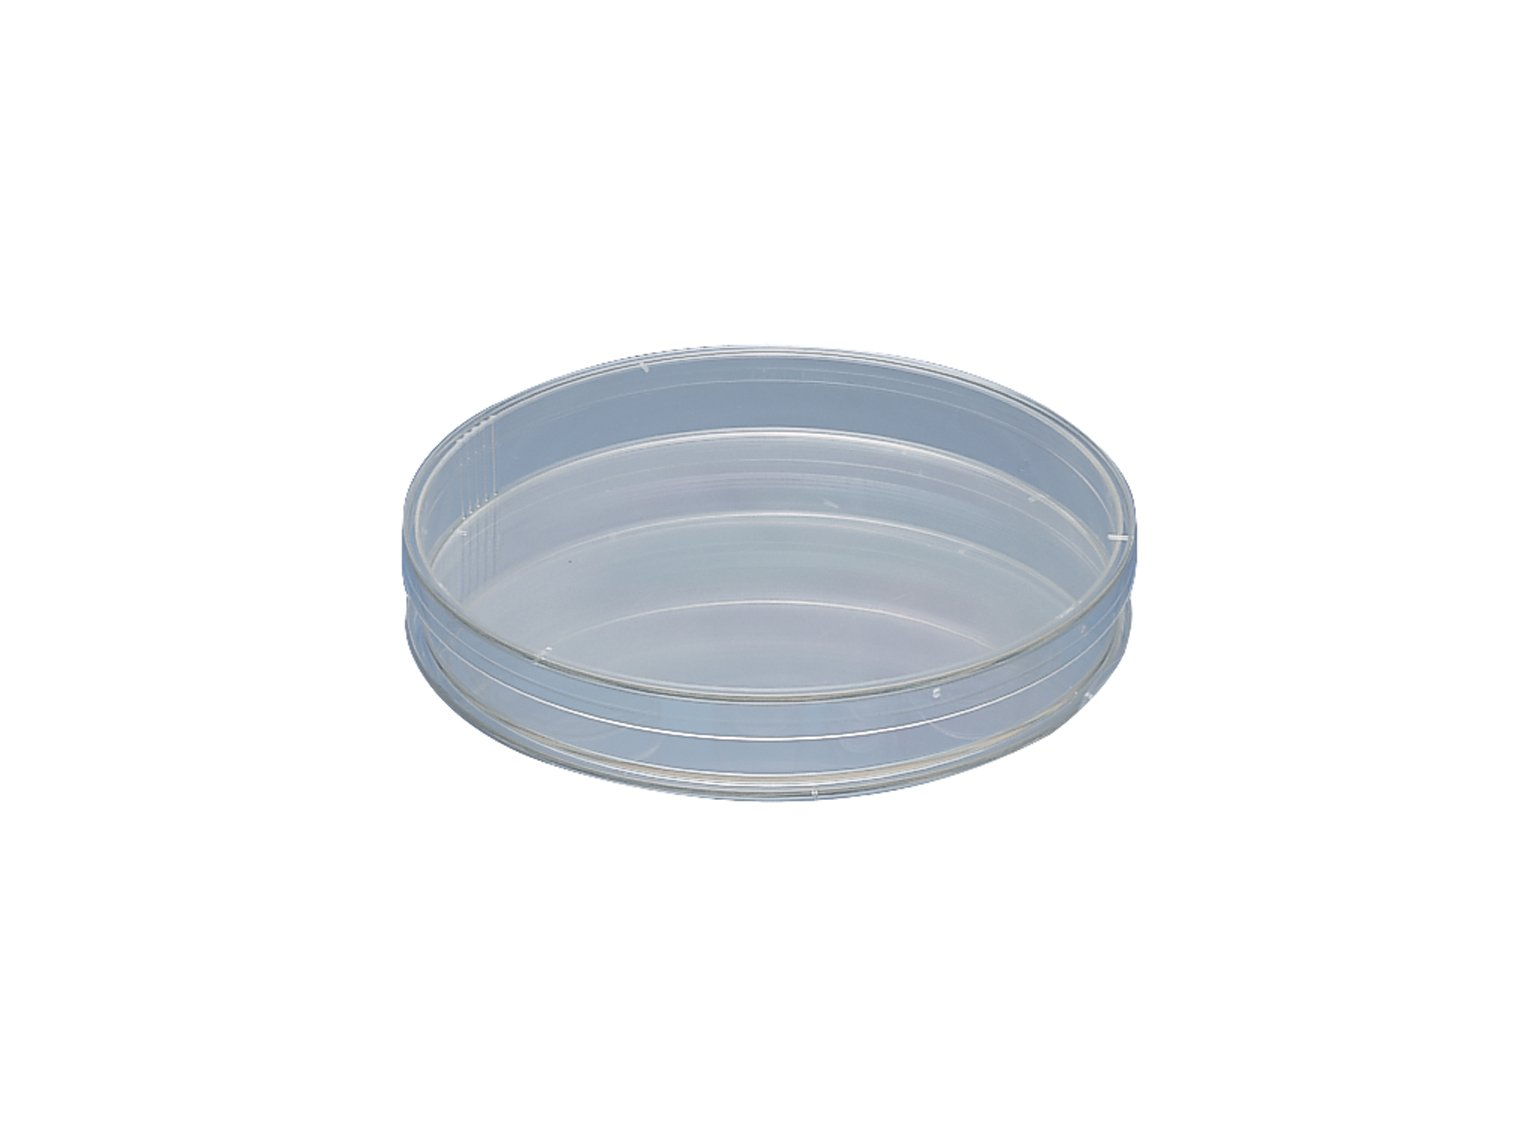 Nunc Cell Culture Dish with Lid Vented Sterile, Culture Area 145cm2, 140mm Diameter x 20 mm Height (Case of 80)